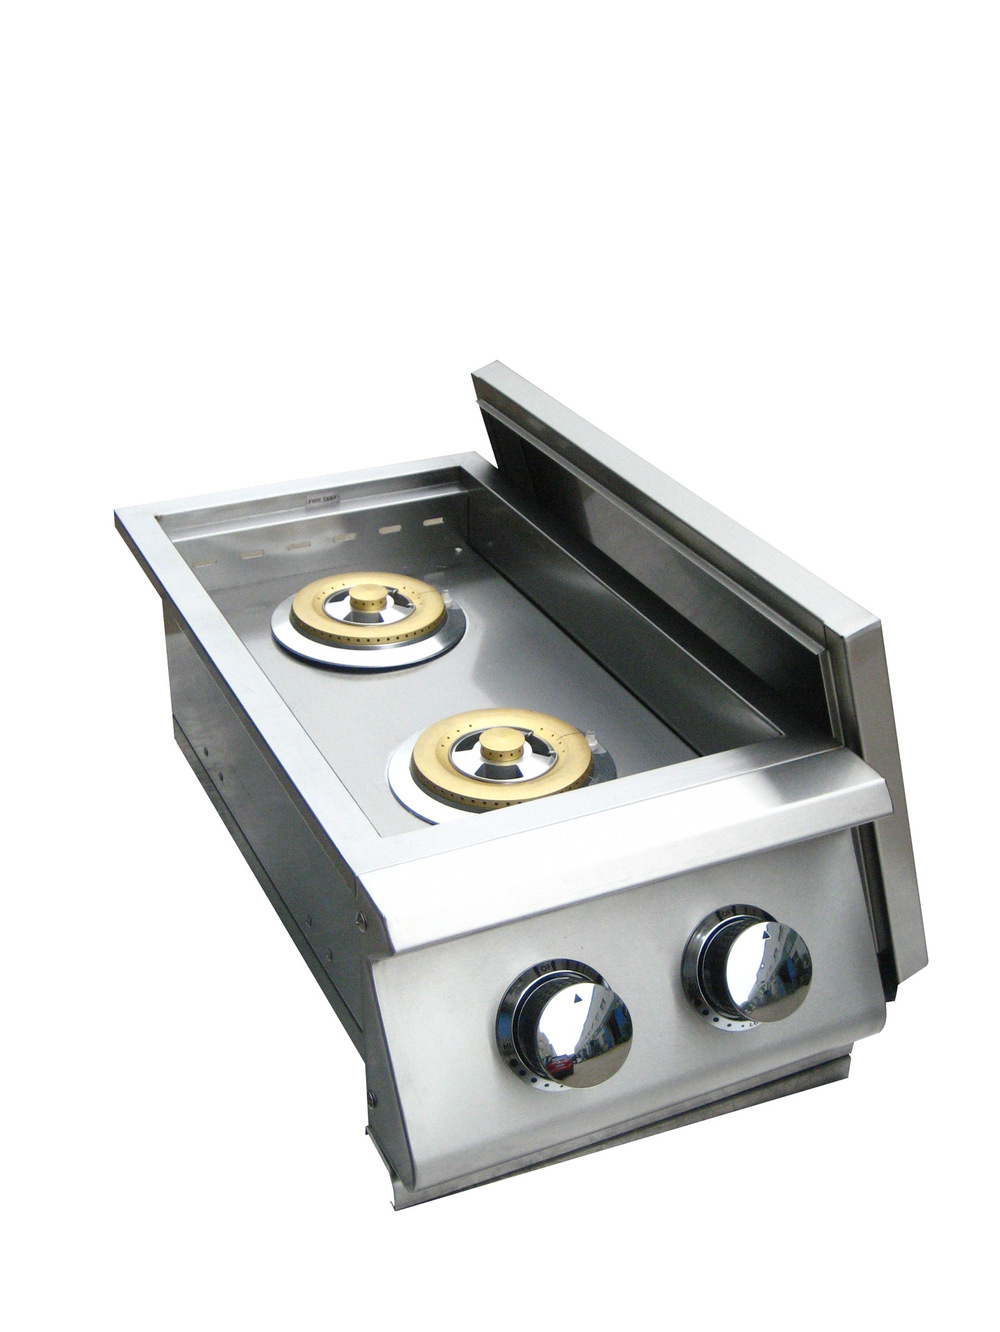 Outdoor Gas Cooktop. 36 In Gas Cooktop. Evo Wheeled Cart Gas ...